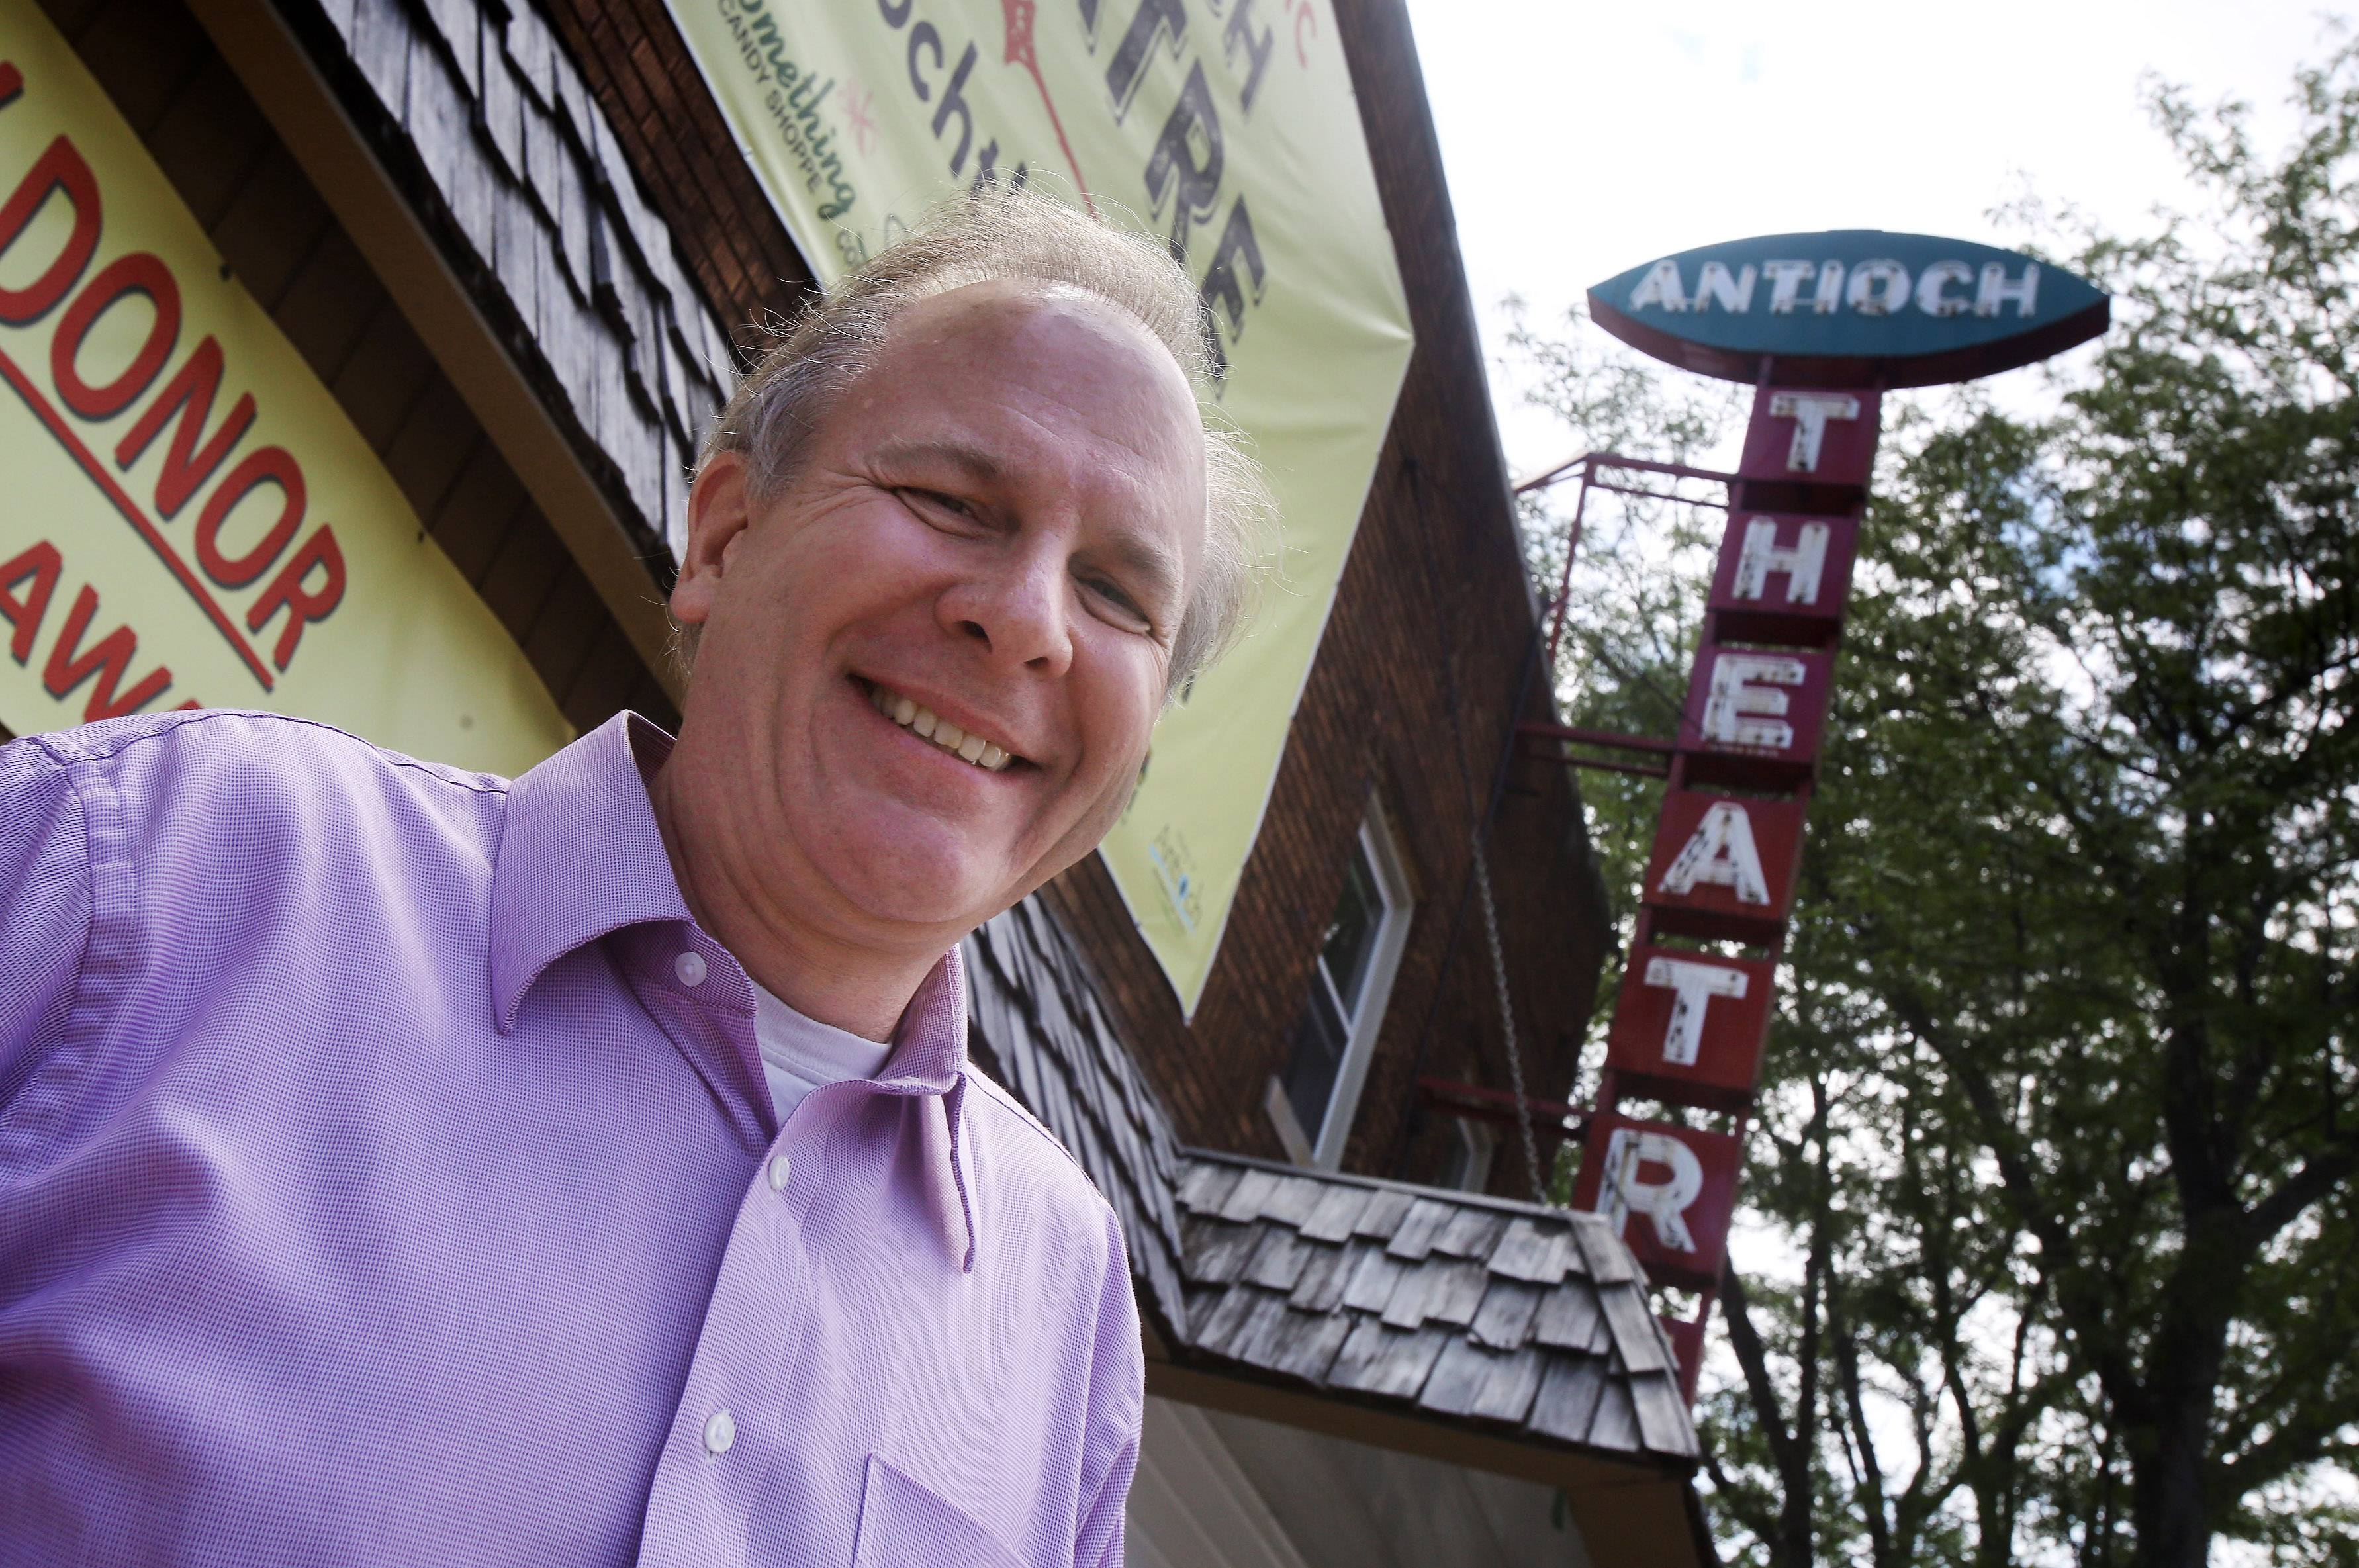 Antioch Theatre owner Tim Downey says he hopes the renovation is complete by the end of the year.